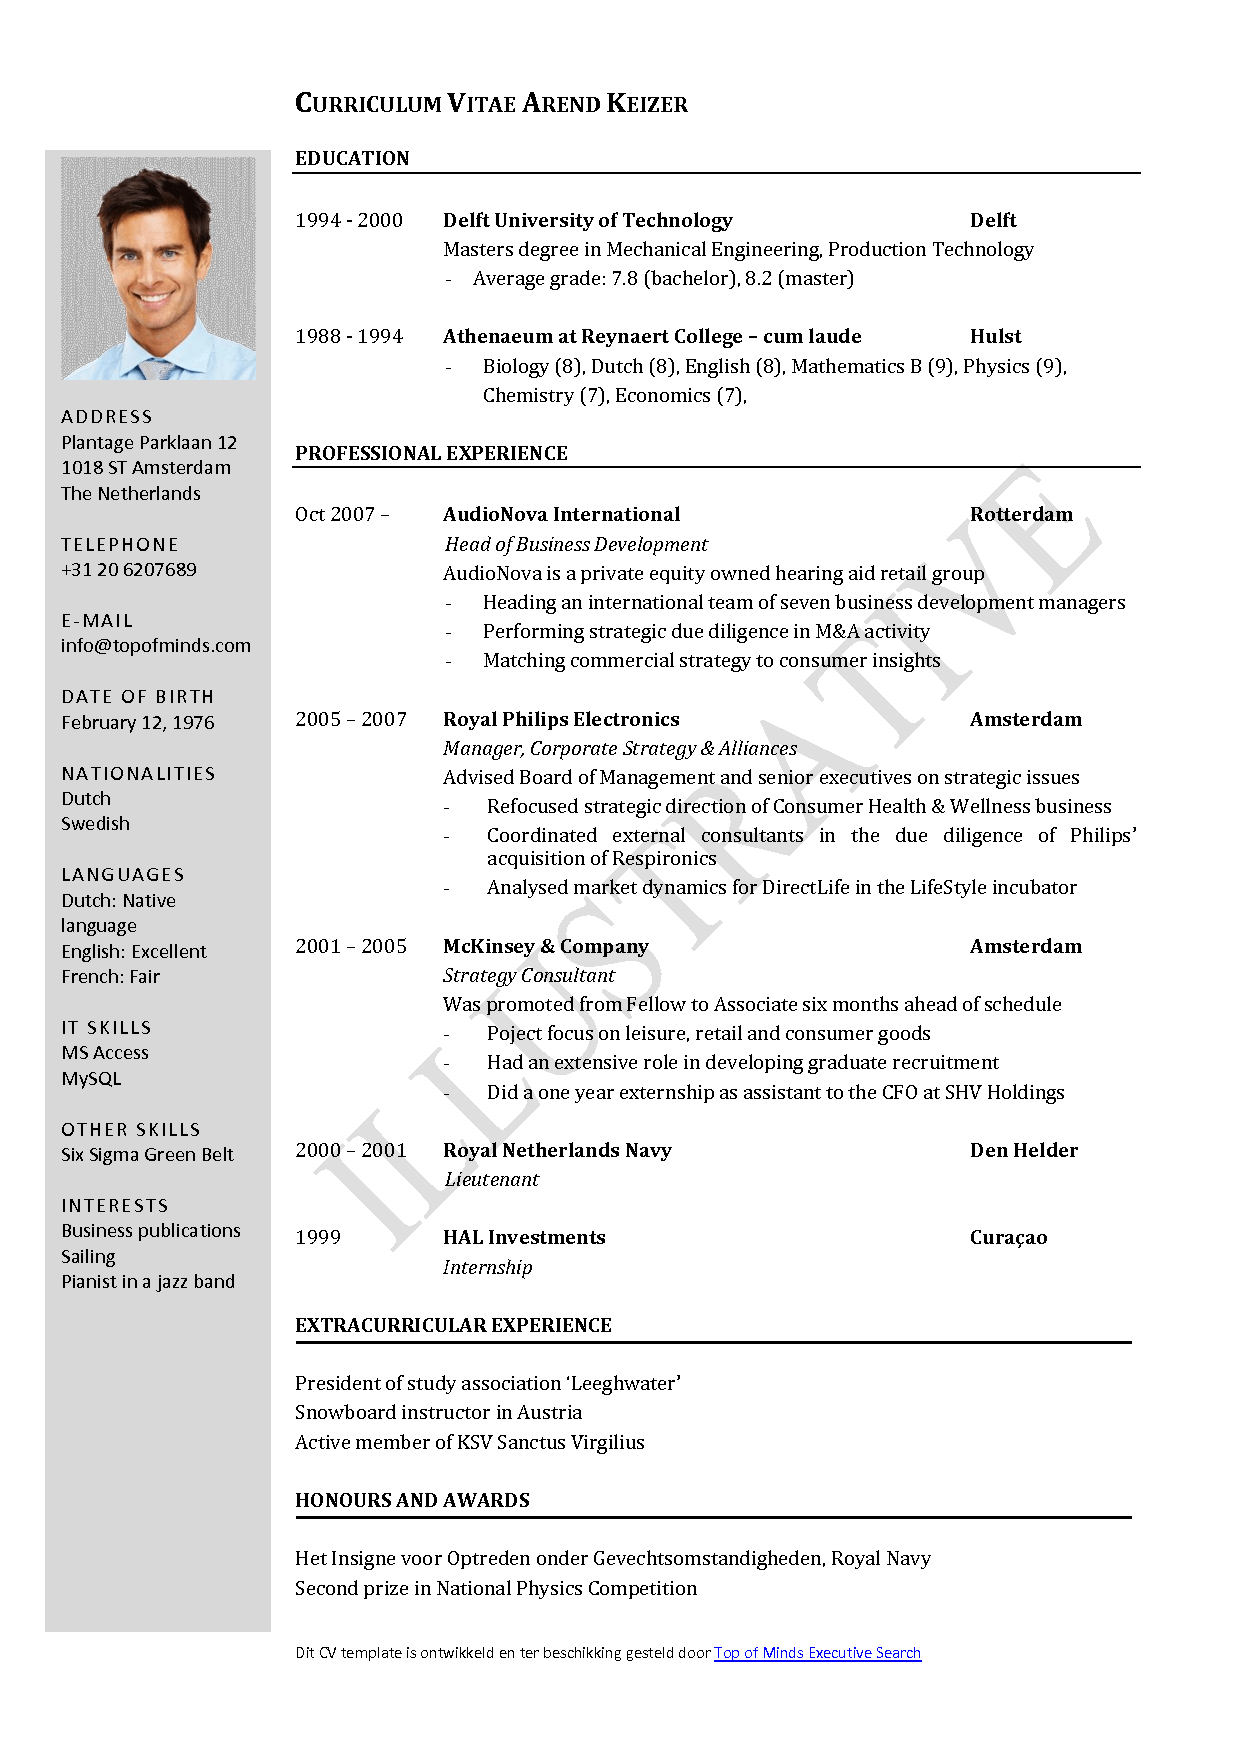 job application cv pdf basic job application templates download free forms u2026